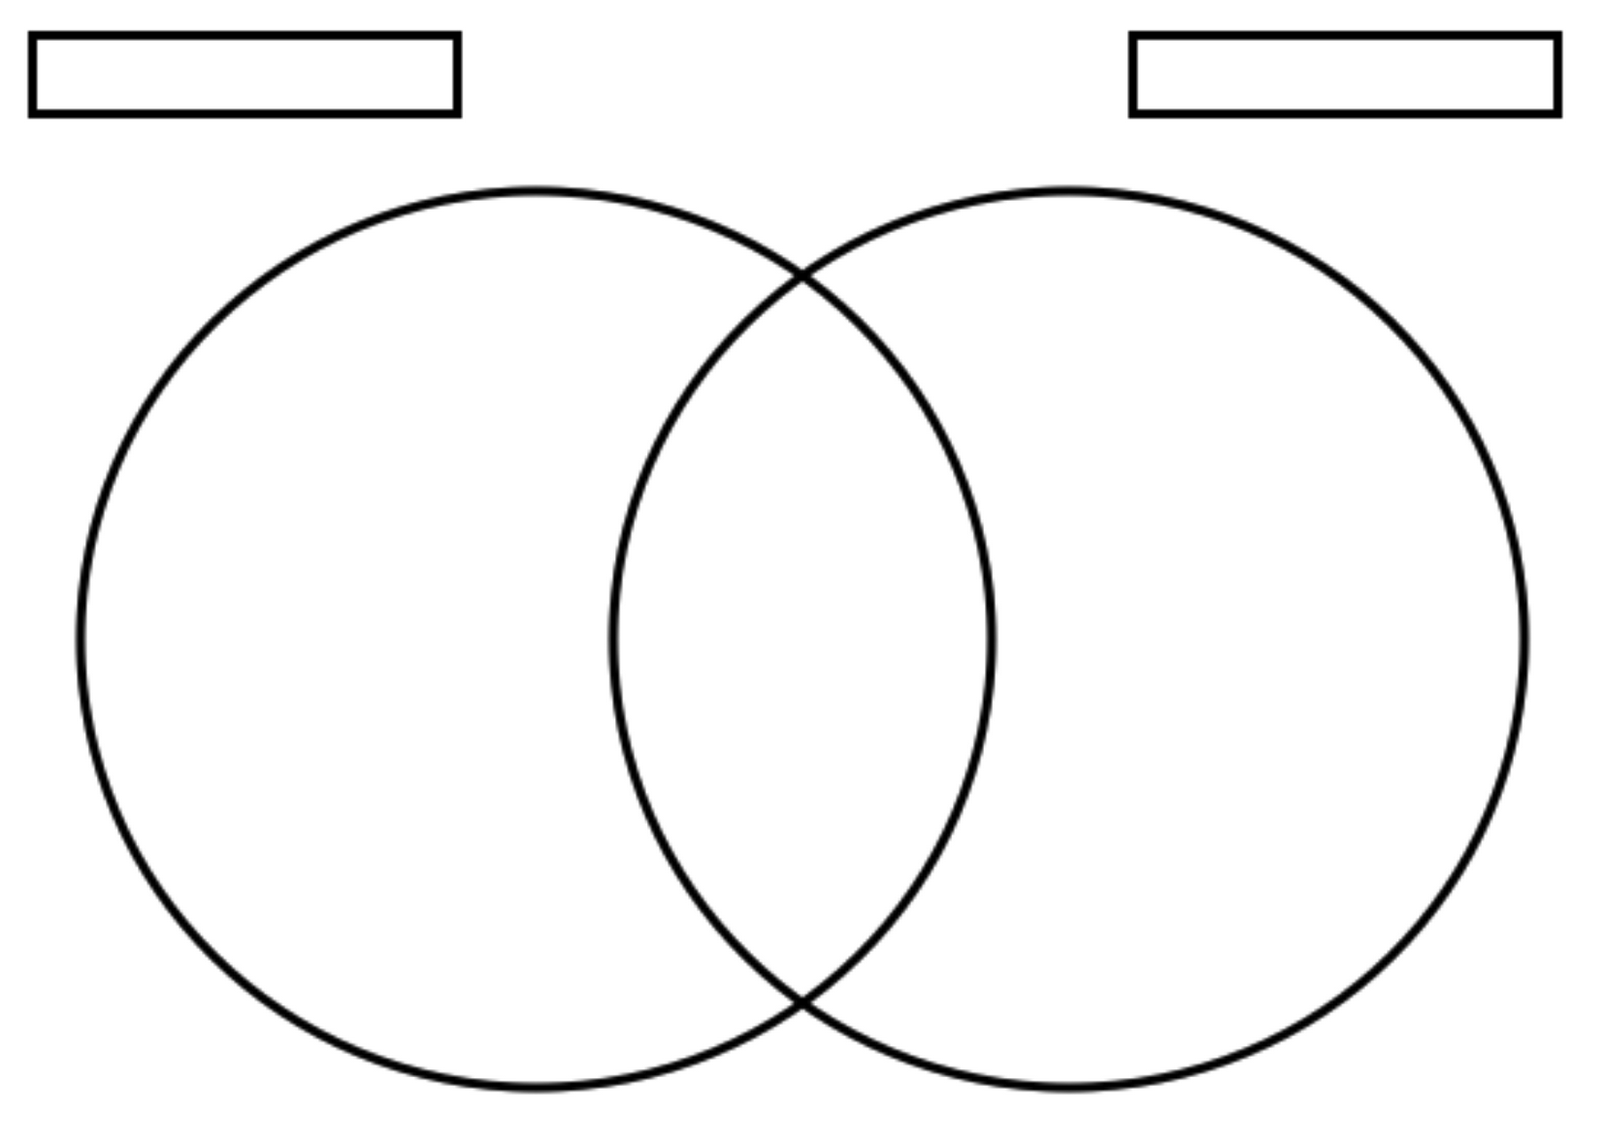 photograph about Venn Diagram Printable Free identify venn diagram template Write-up Blank venn diagram, Venn